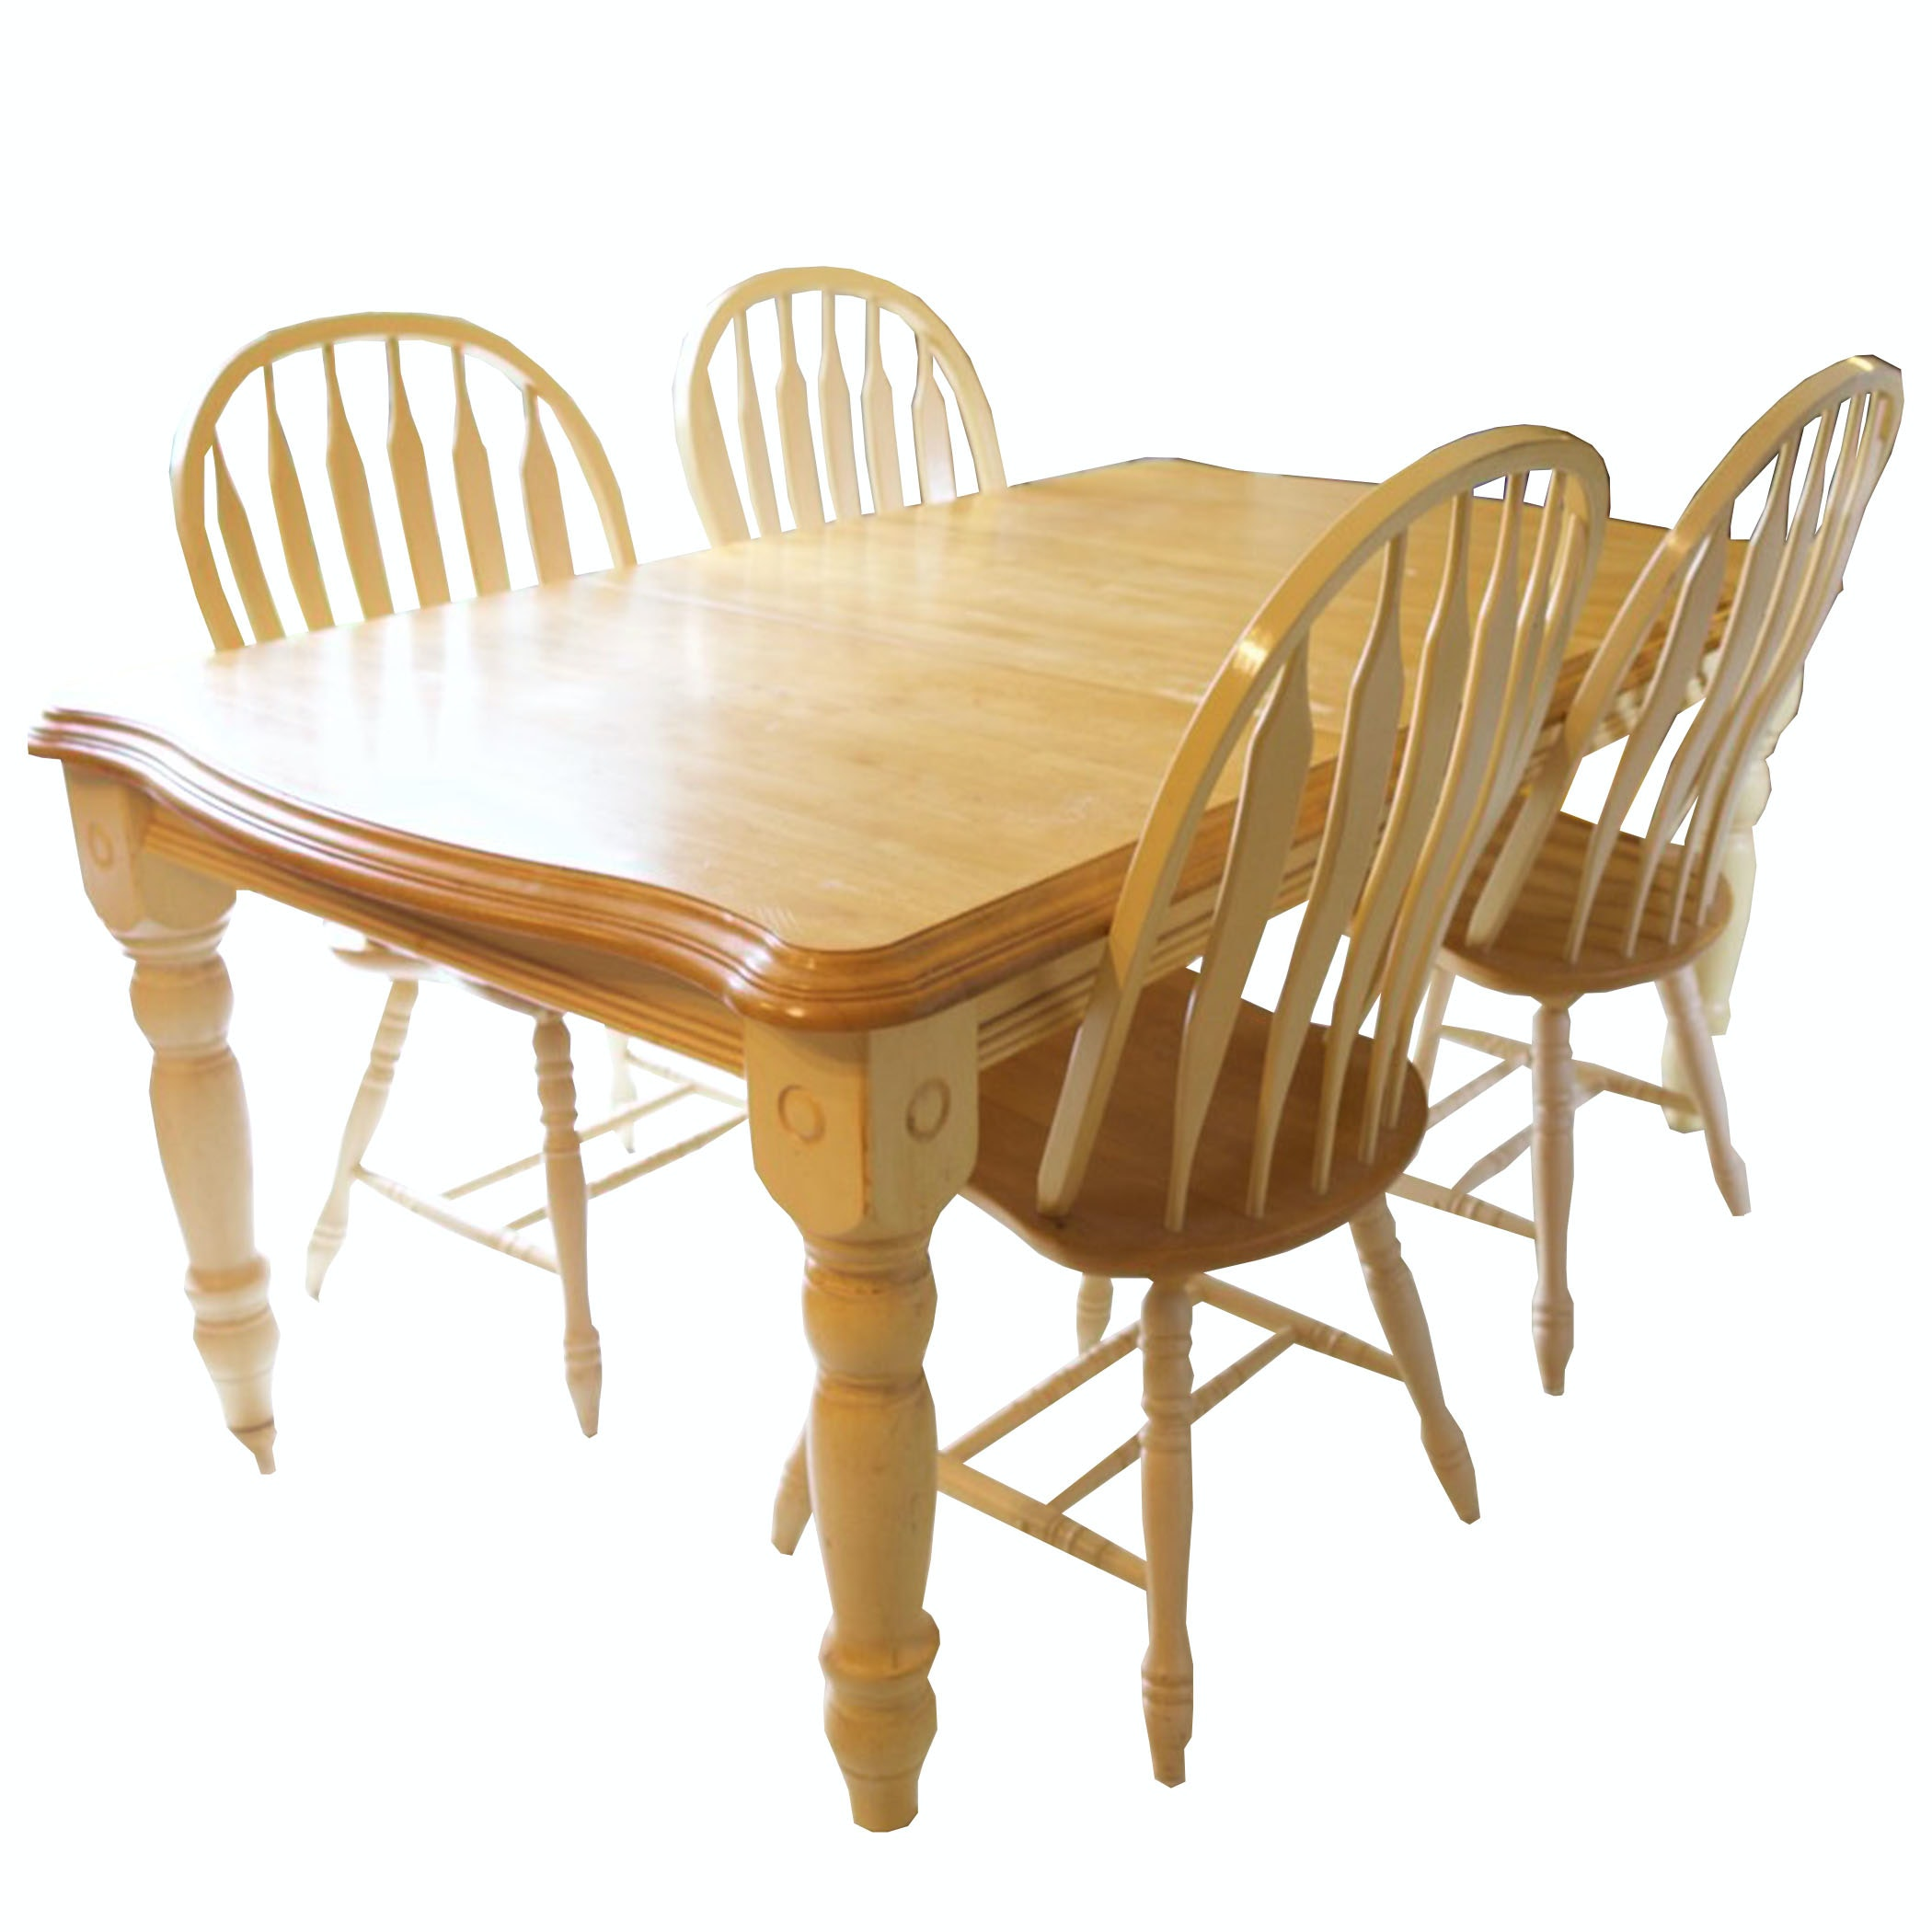 French Country Dining Table and Four Windsor Chairs